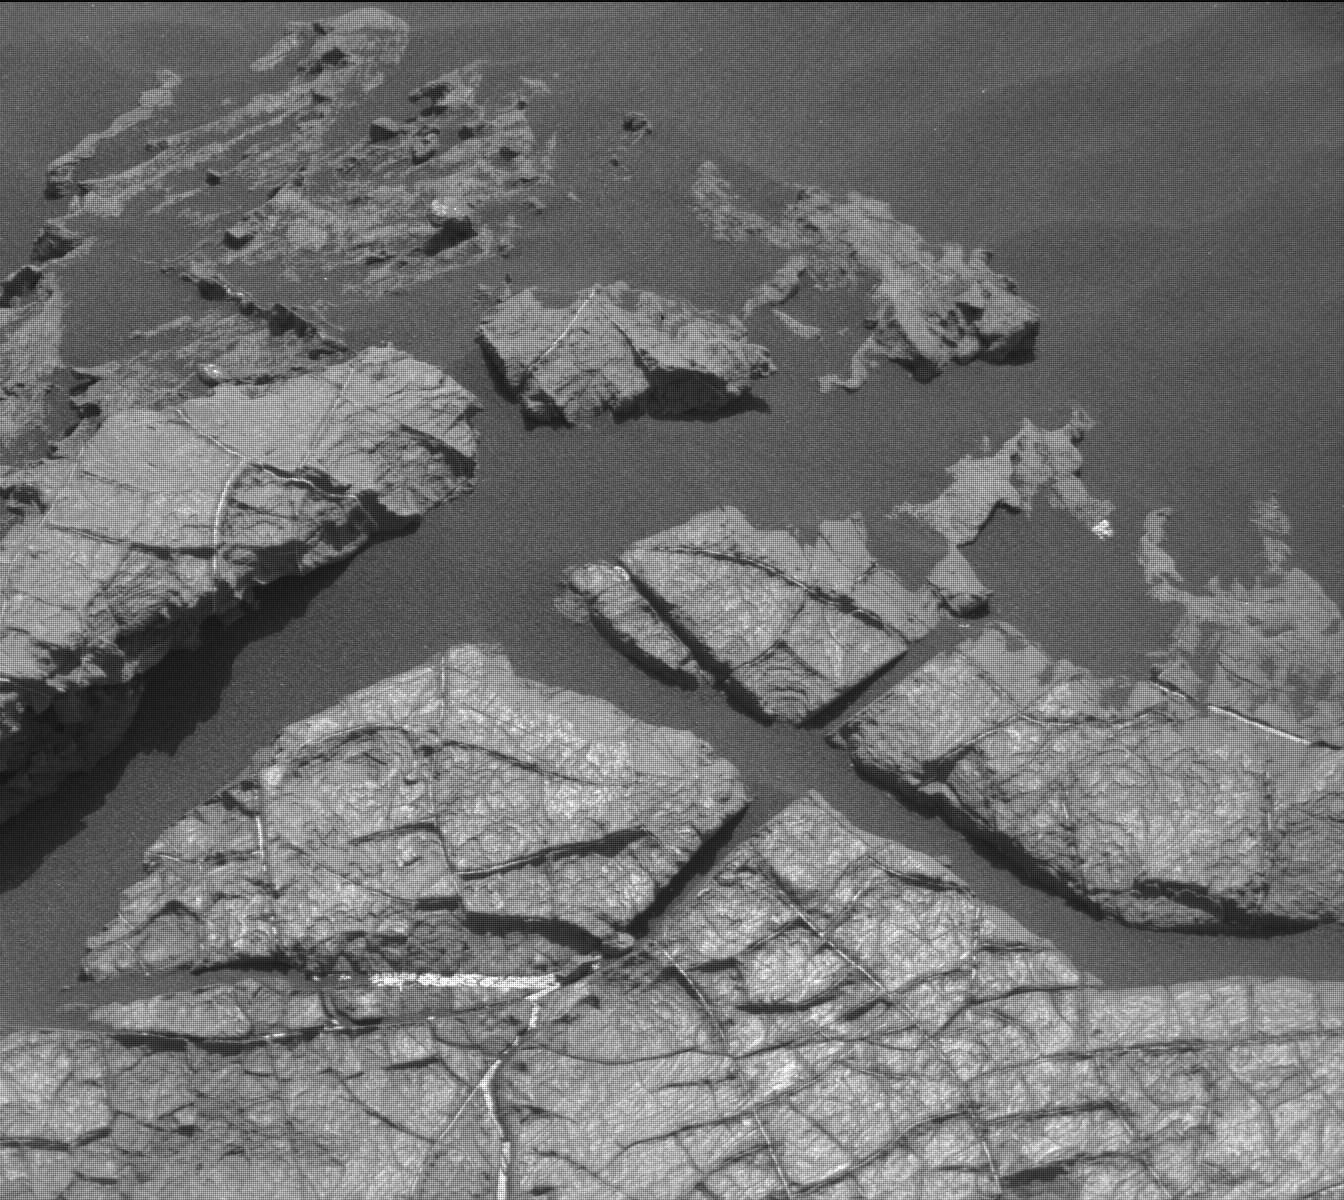 Nasa's Mars rover Curiosity acquired this image using its Mast Camera (Mastcam) on Sol 1555